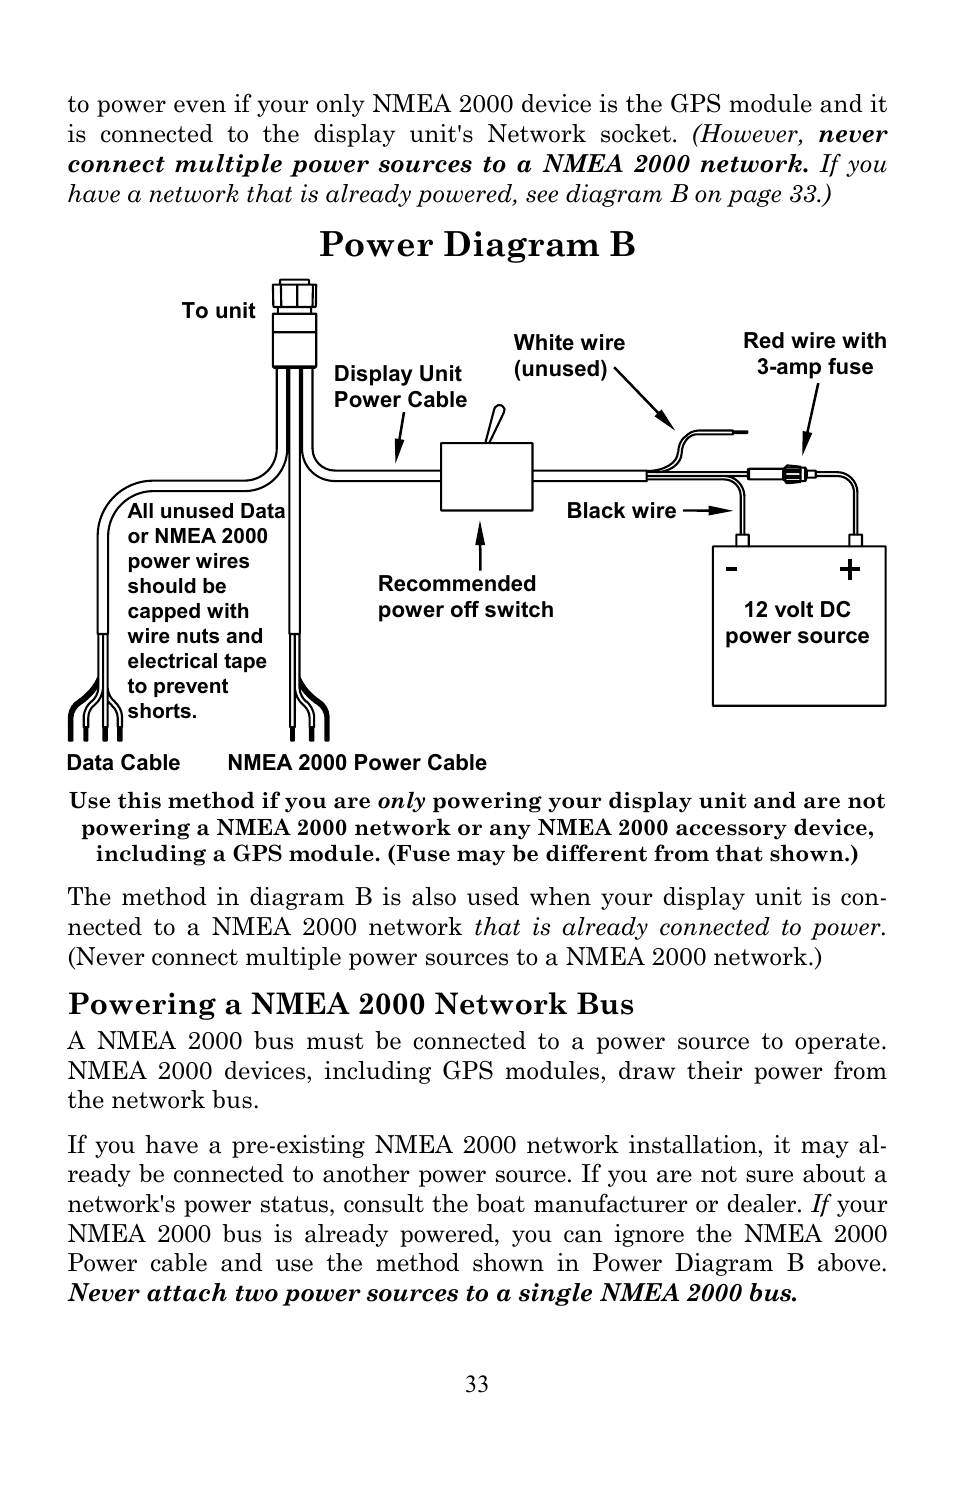 hight resolution of power diagram powering a nmea network bus lowrance electronic user manual page png 954x1487 lowrance nmea